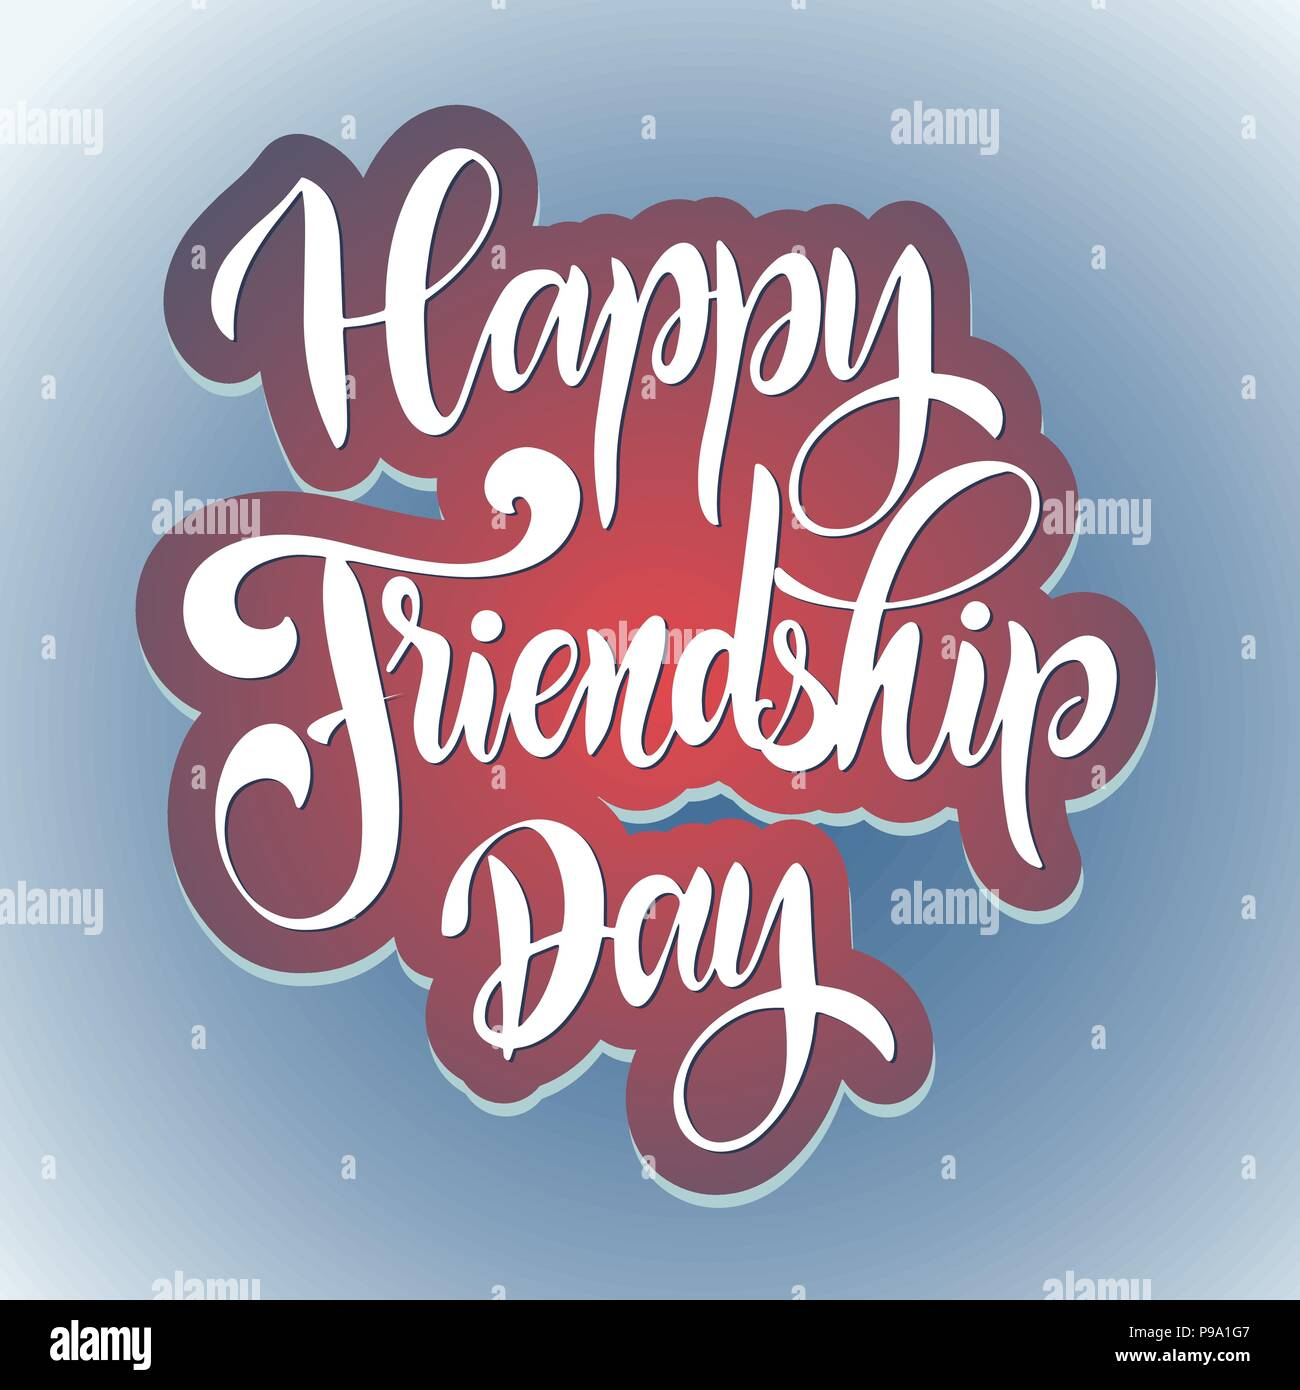 Friendship day hand drawn lettering vector elements for invitations friendship day hand drawn lettering vector elements for invitations posters greeting cards t shirt design friendship quotes m4hsunfo